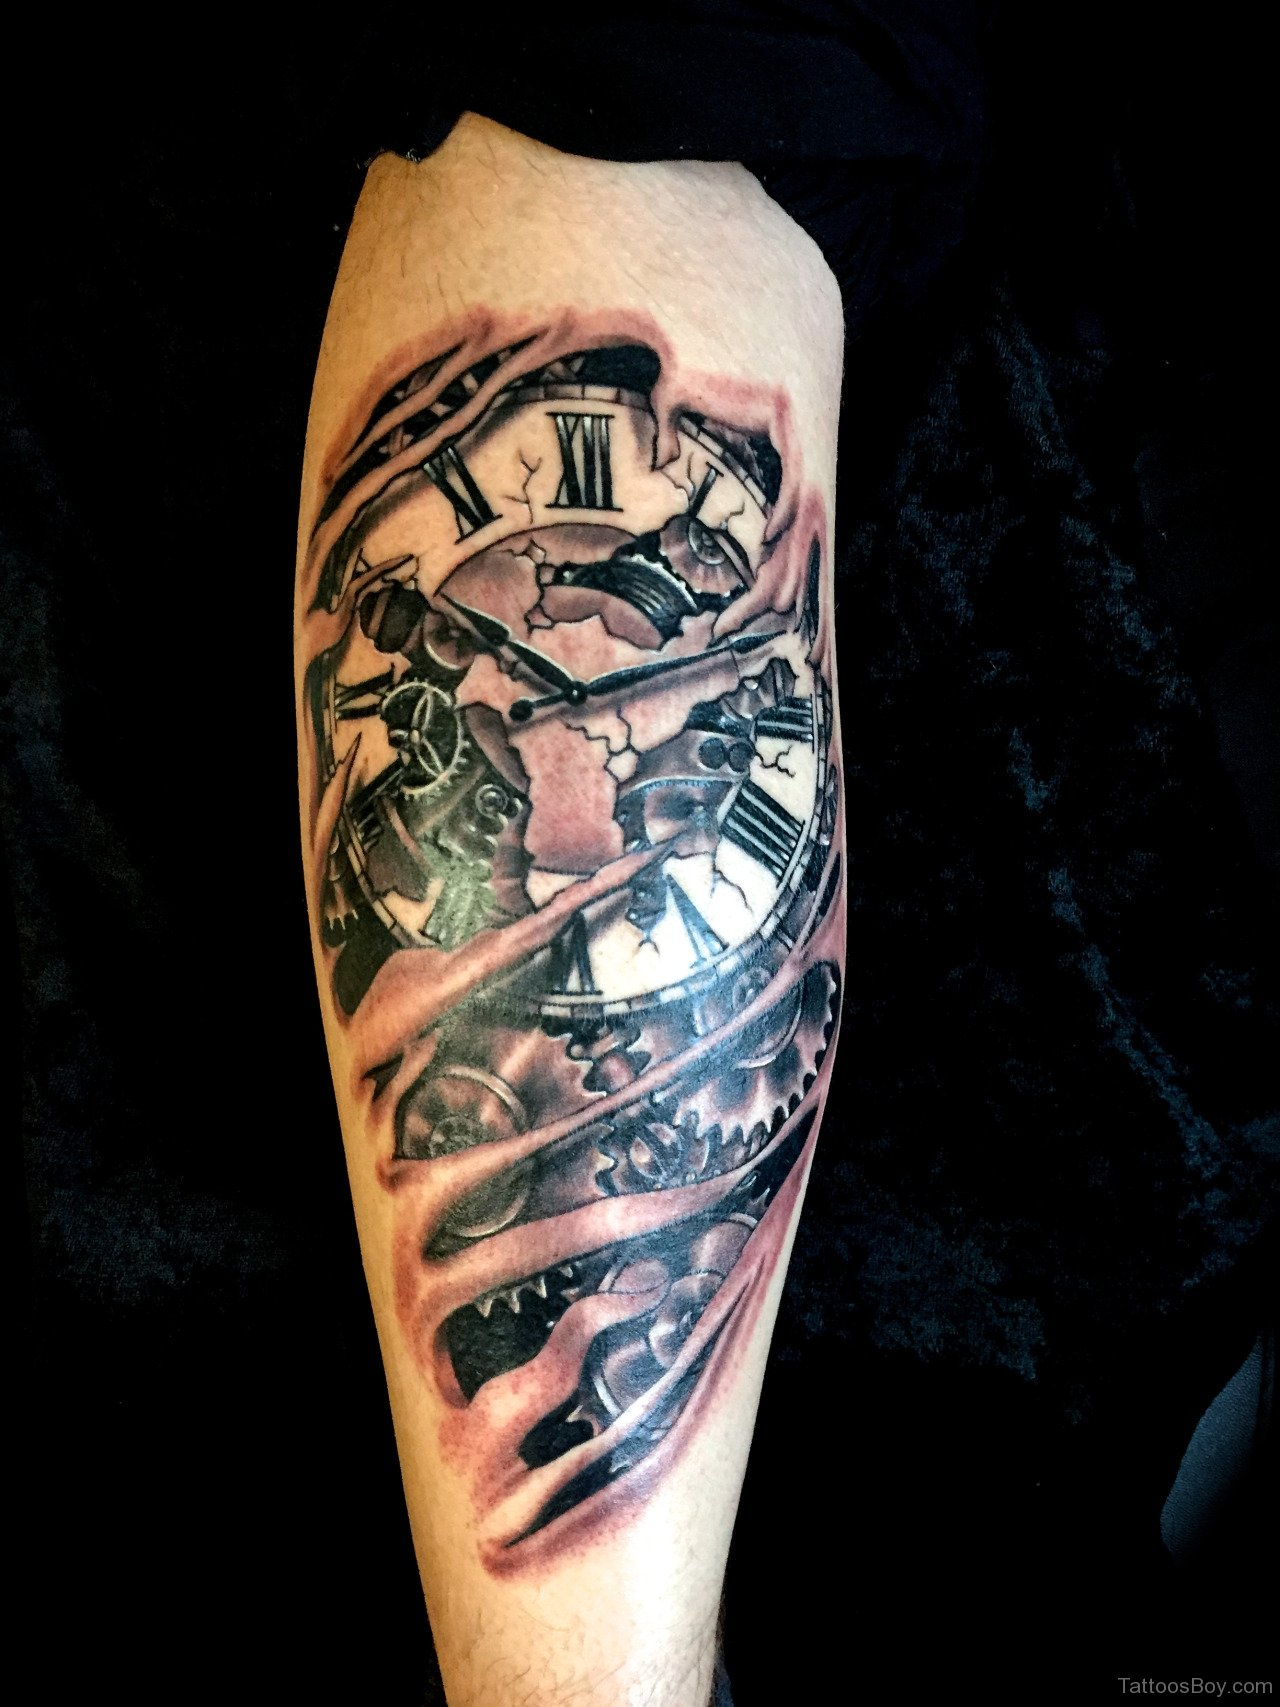 Coolest 3D Broken Clock Tattoo Made On Back Leg